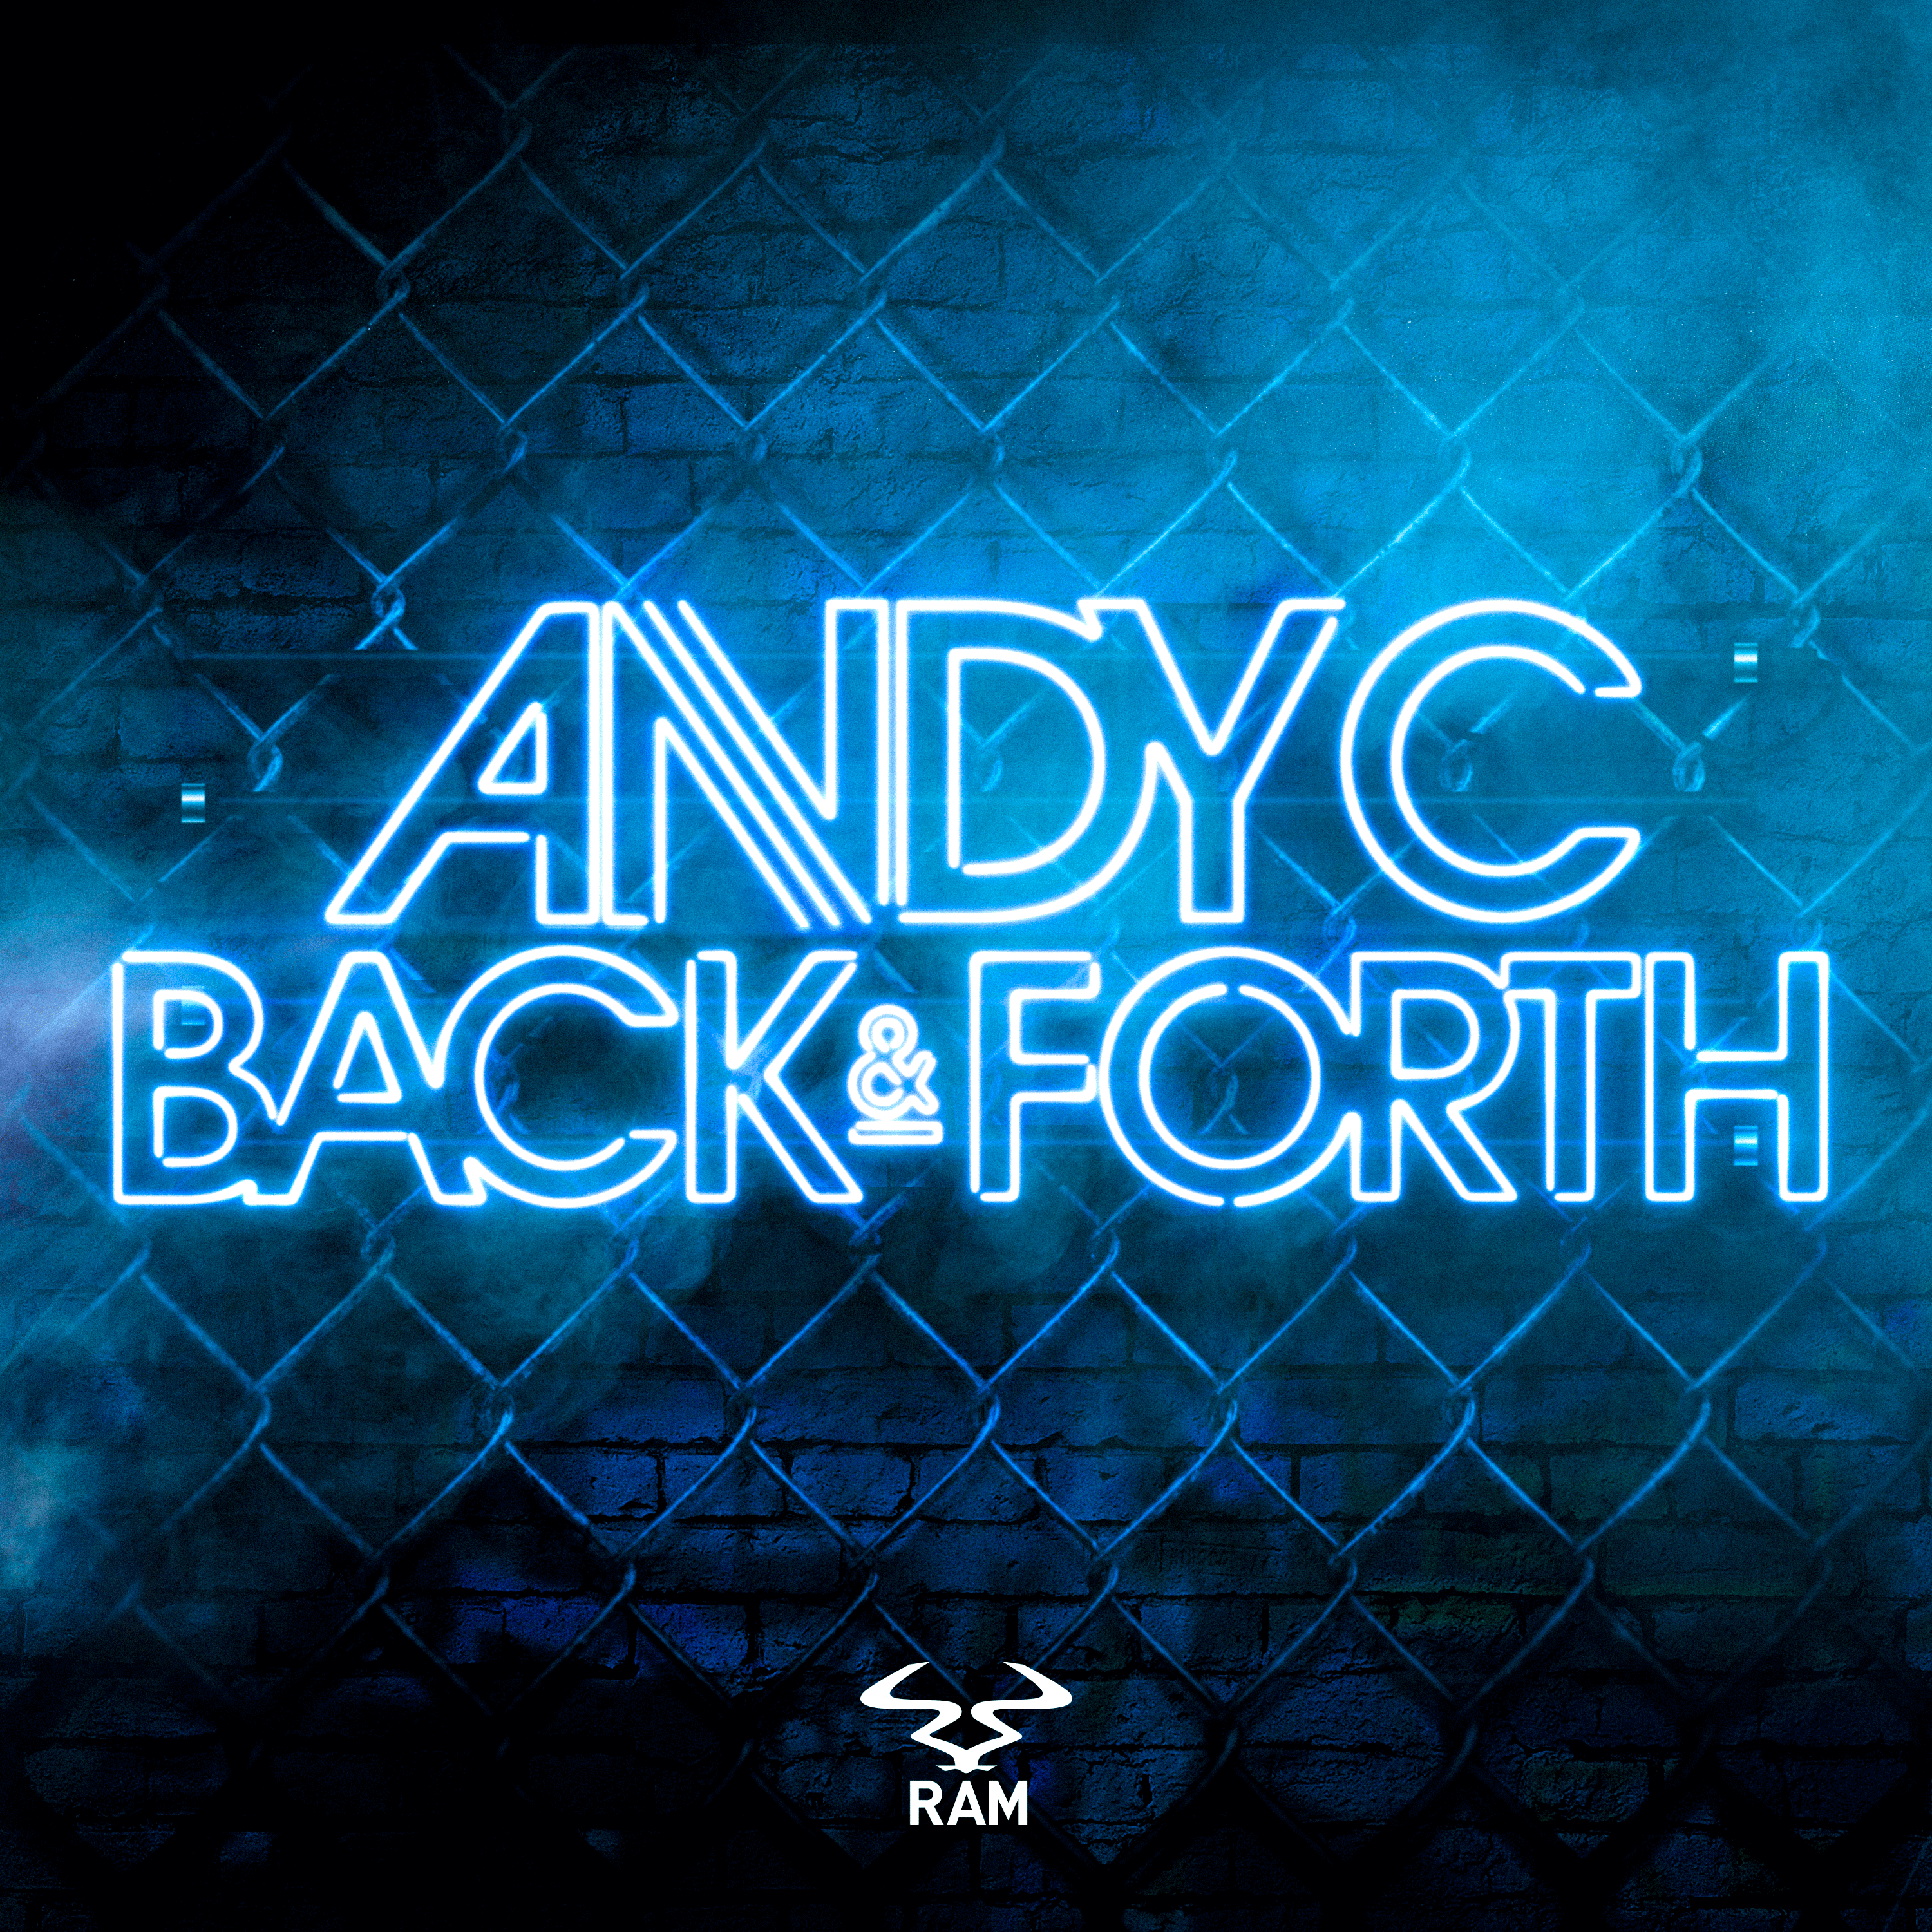 Back & Forth out now